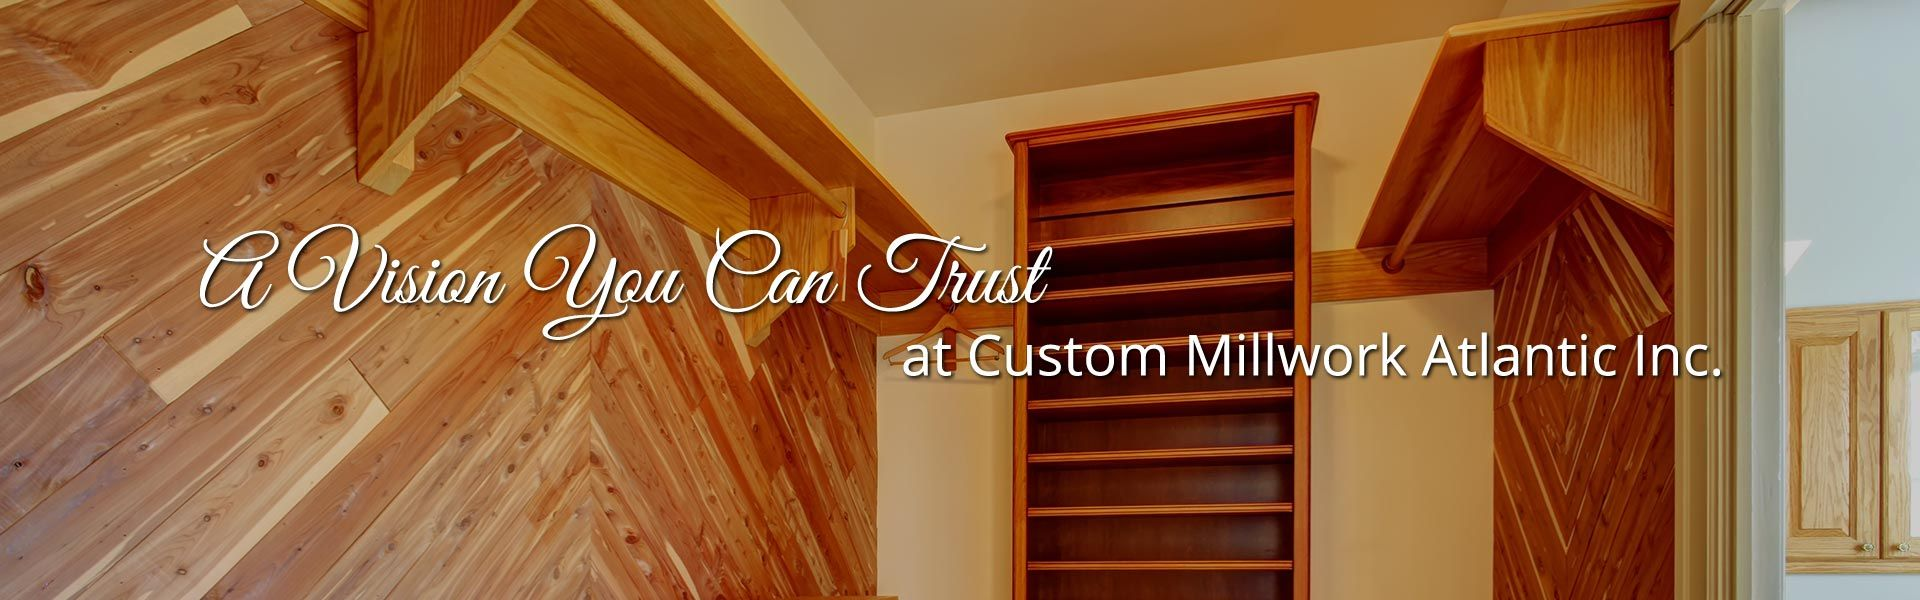 A Vision You Can Trust at Custom Millwork Atlantic Inc. | Custom built closet